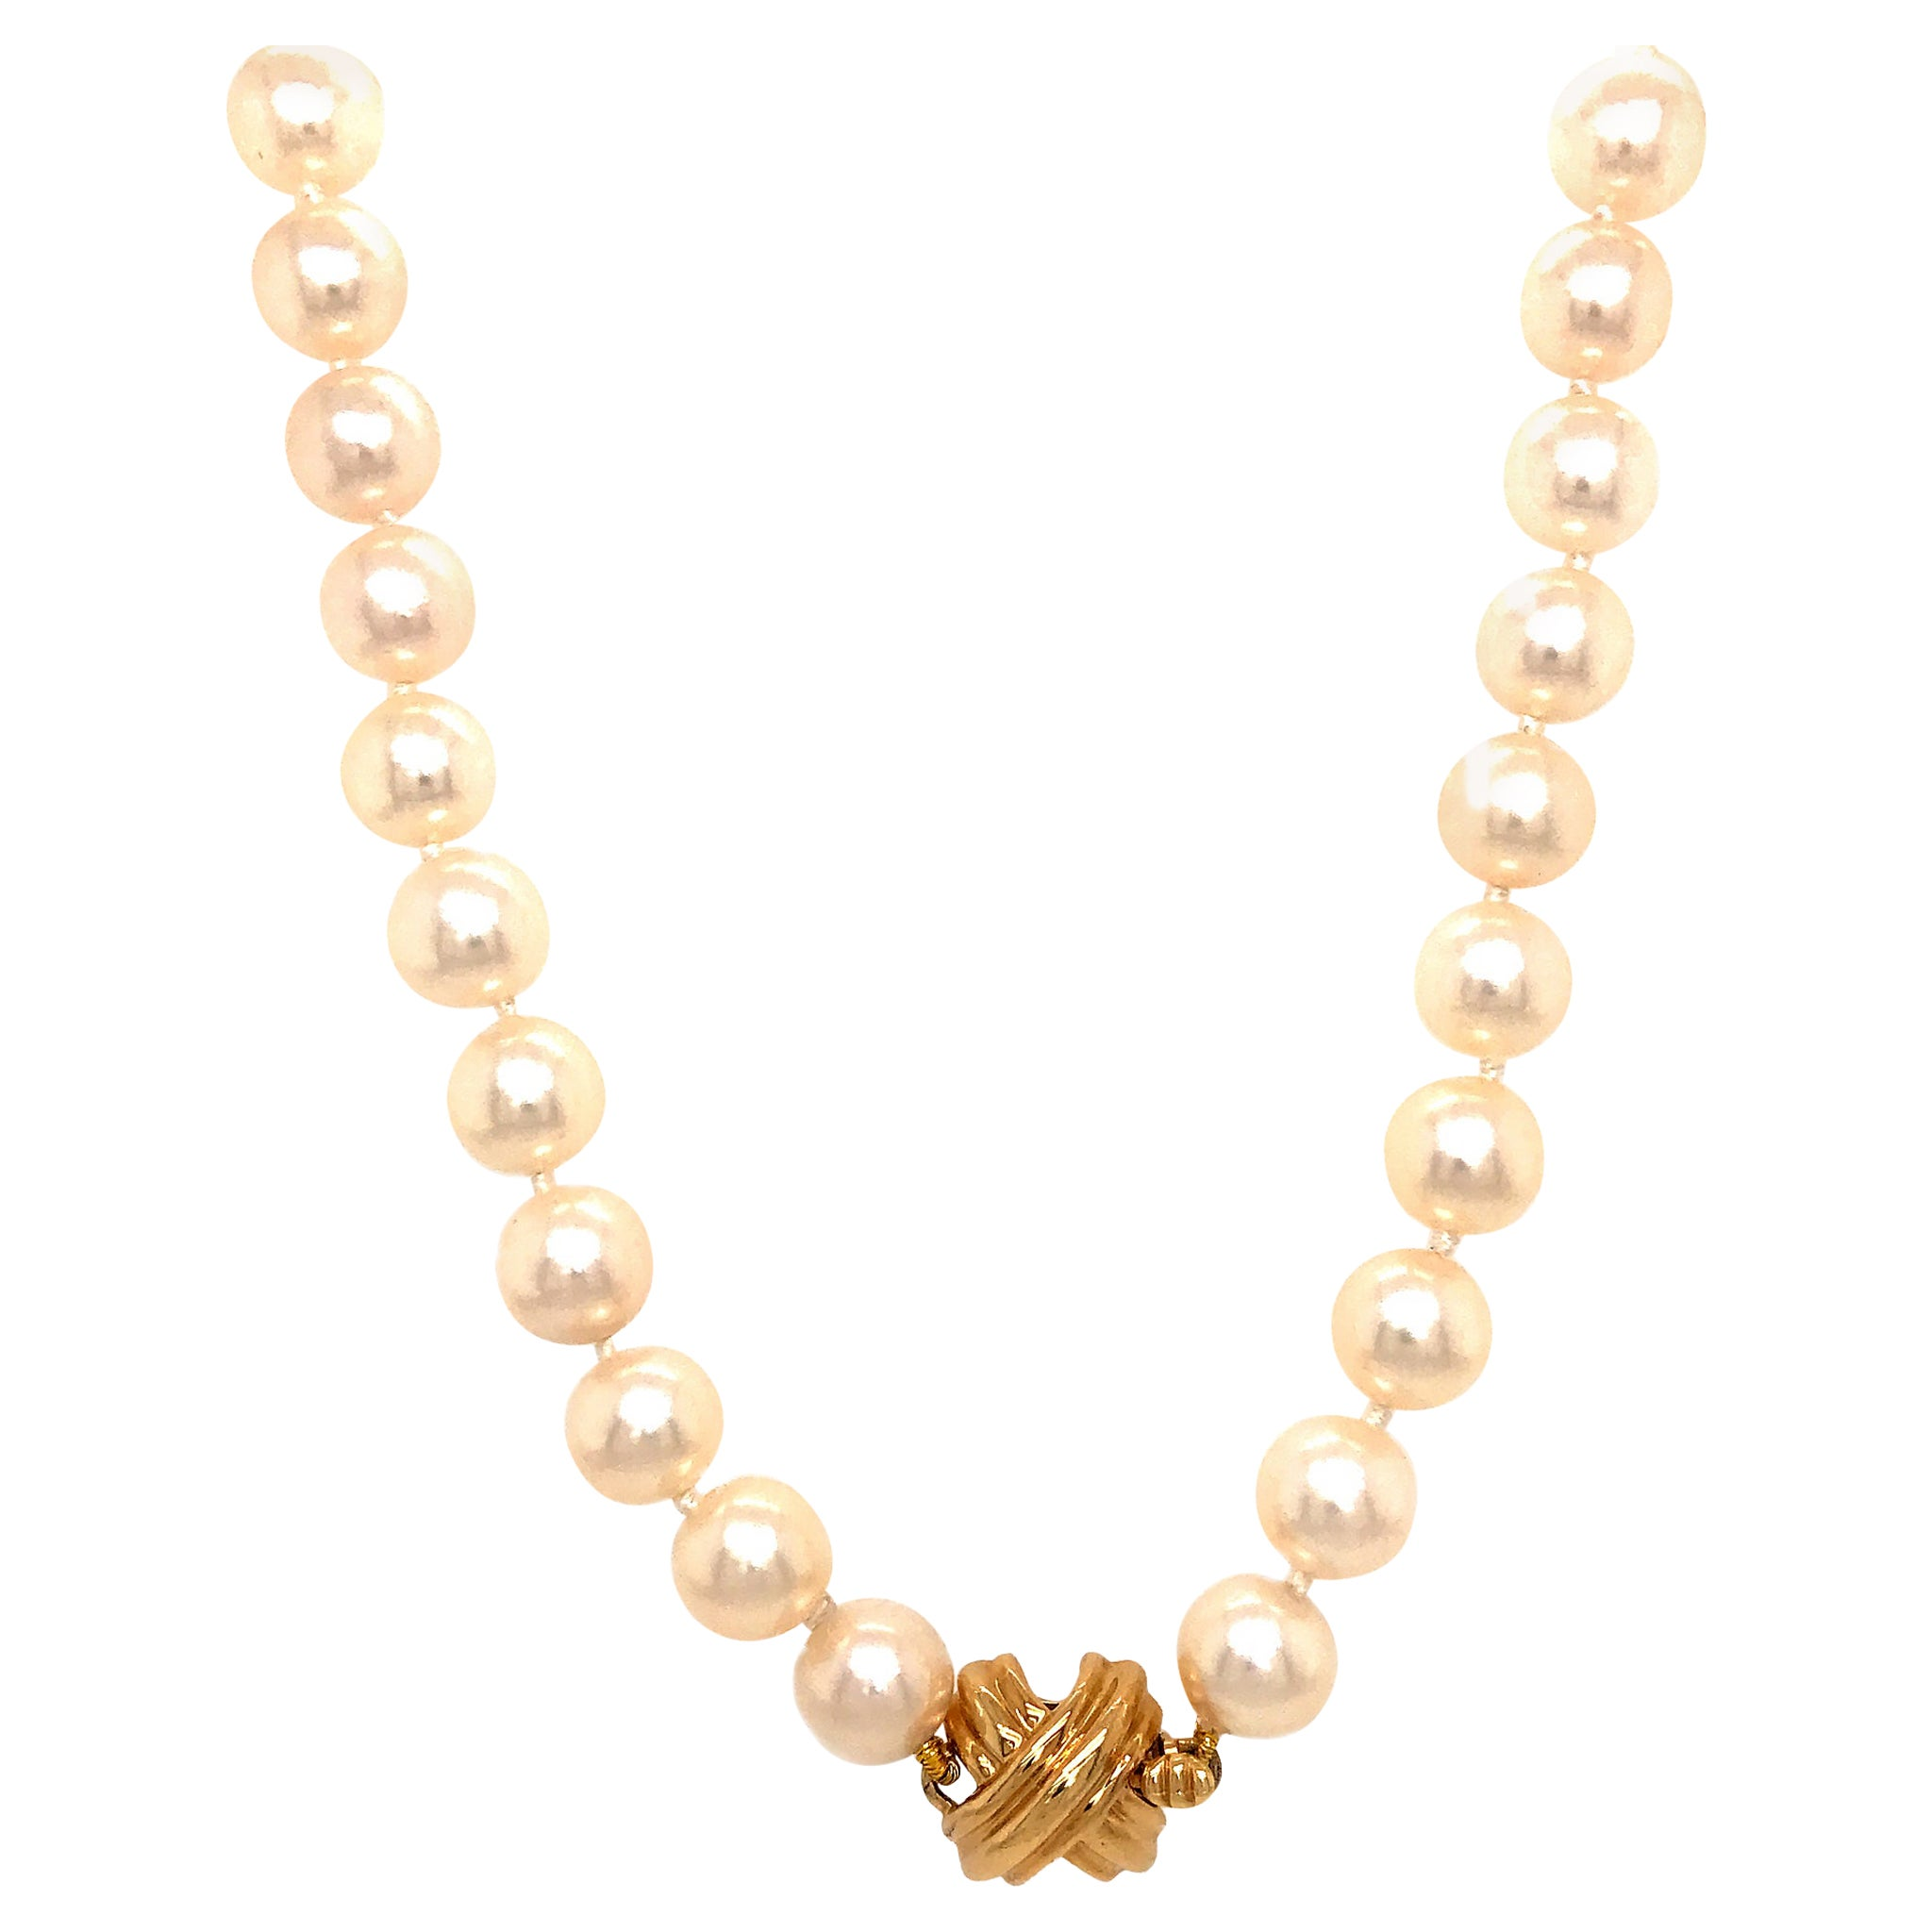 Tiffany & Co. Akoya Pearls with 18 Karat Yellow Gold X-Clasp Necklace